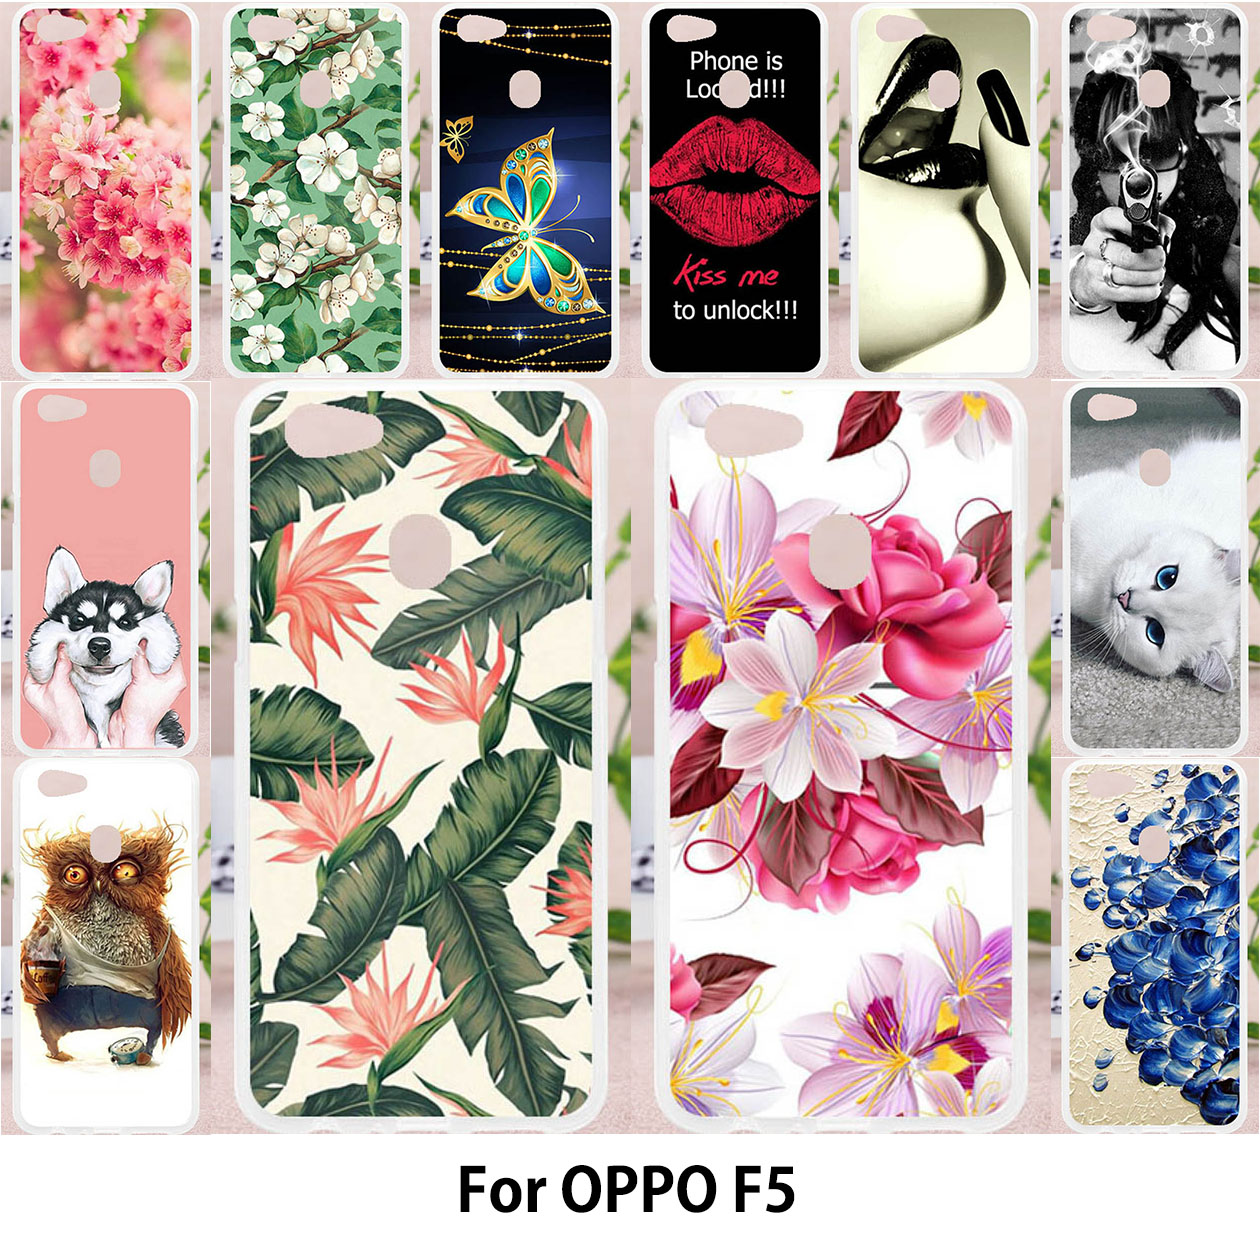 Phone Bumper For Case OPPO F5 Case For OPPO A73 F5 Youth F5 Plus Cover Soft Silicone Painting Cases Owl Cat Flower Cute Animals